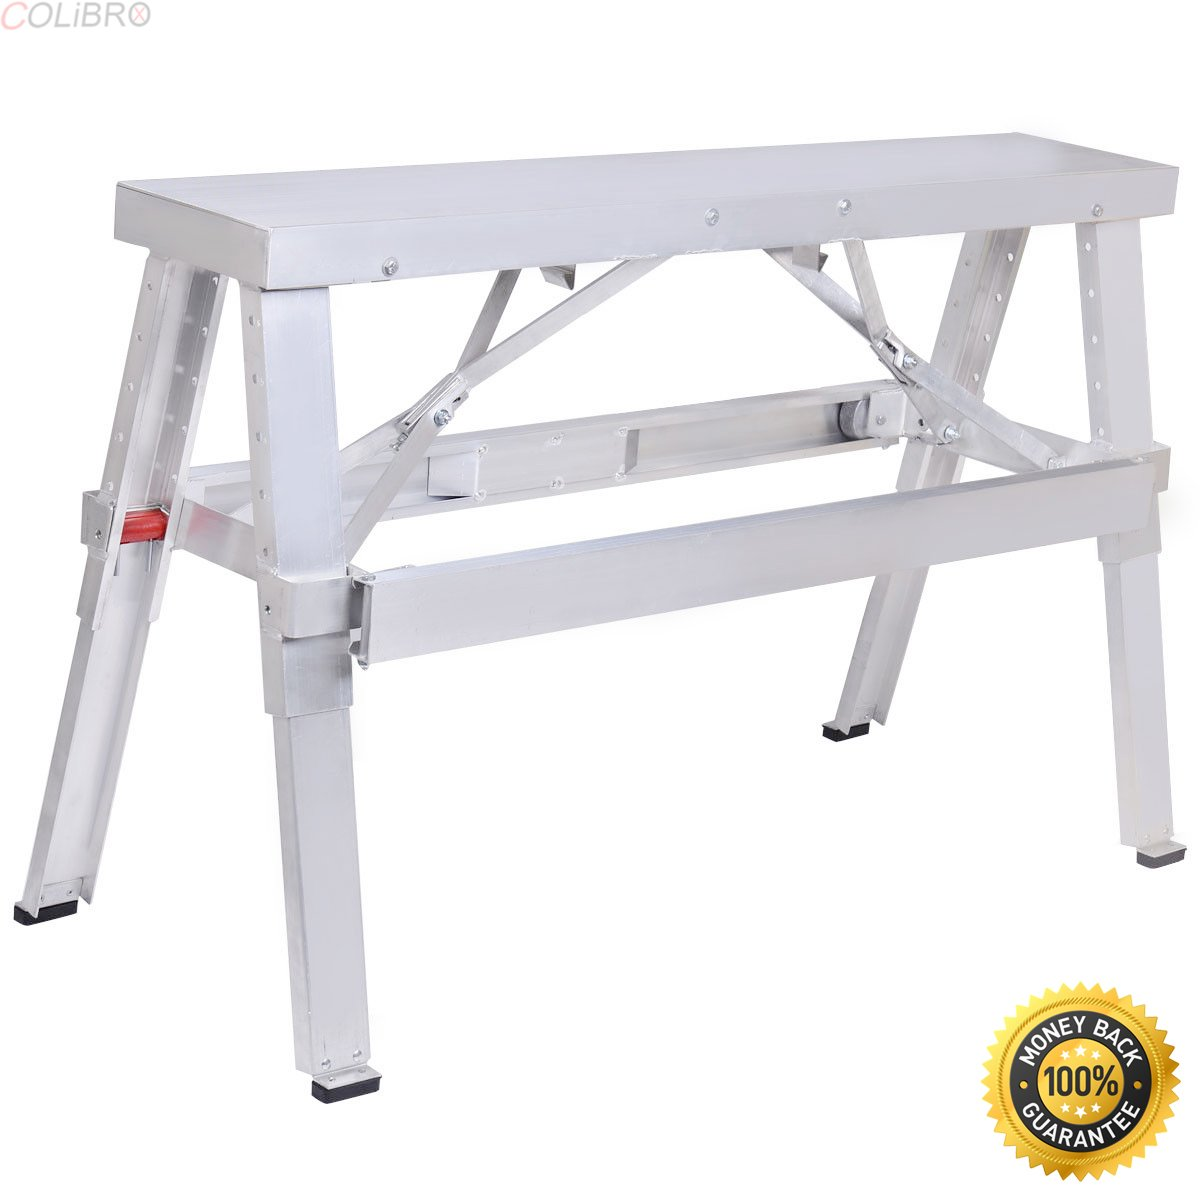 COLIBROX--New Aluminum Heavy Duty Drywall Walk-Up Adjustable 18''-30'' Folding Bench,Workbenches ,mainstays folding bench,foldable bench seat,folding bench workout